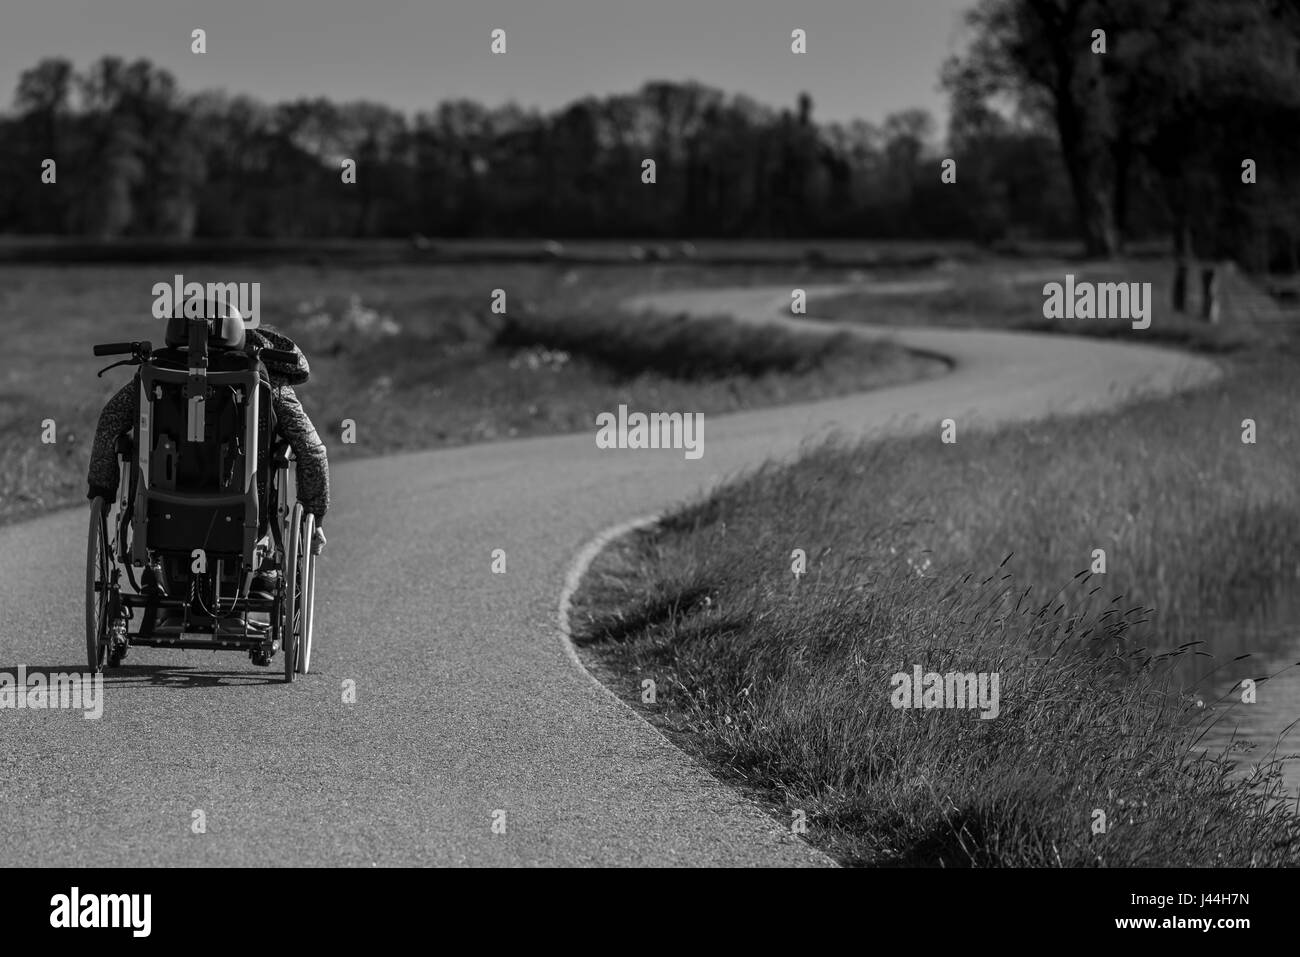 A disabled person in a wheelchair alone on a winding road - Stock Image